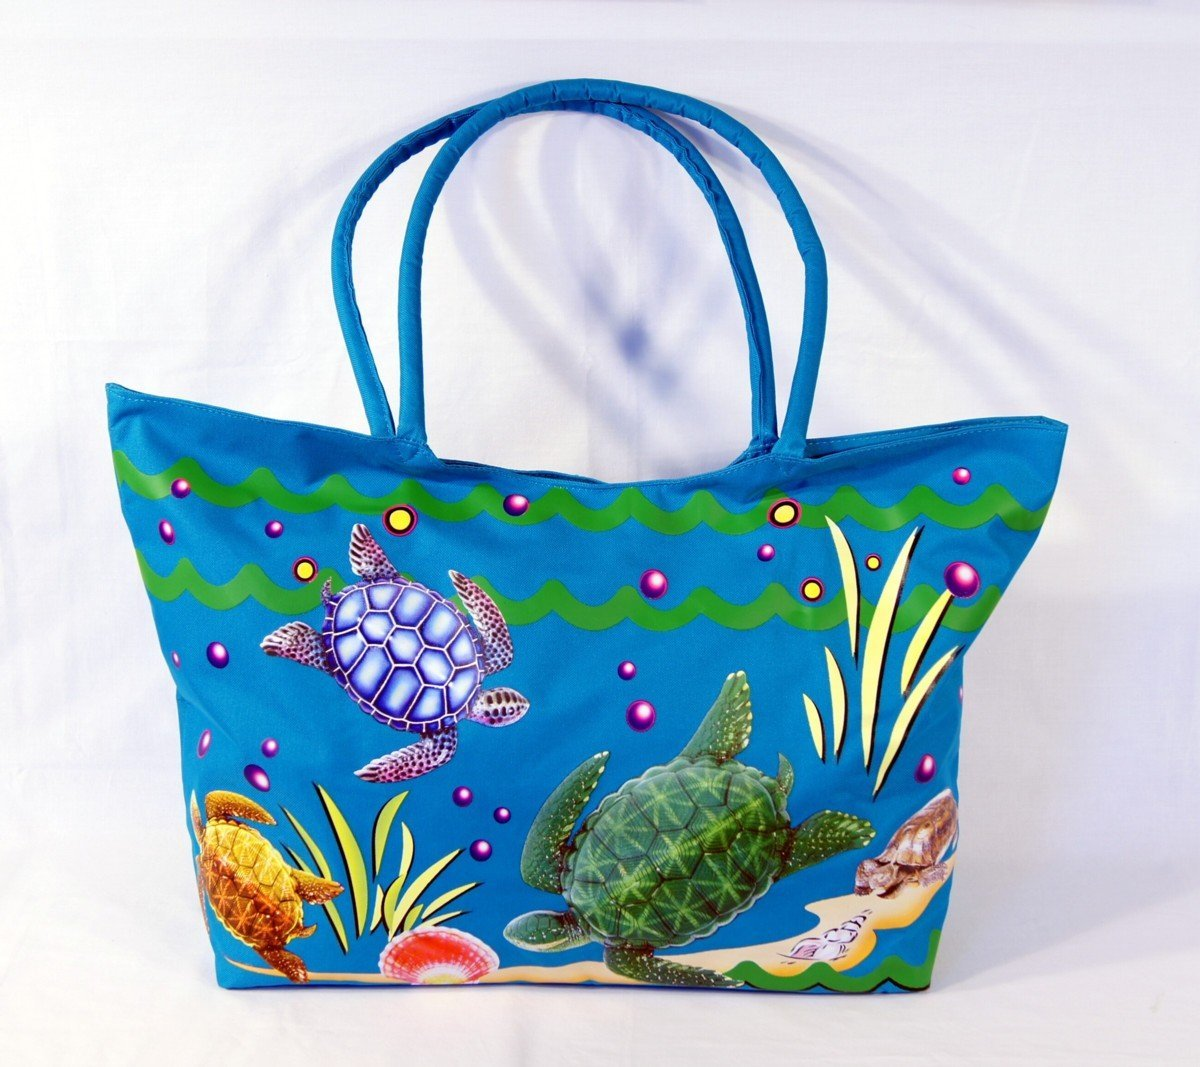 Best Beach Bag When You Have Kids